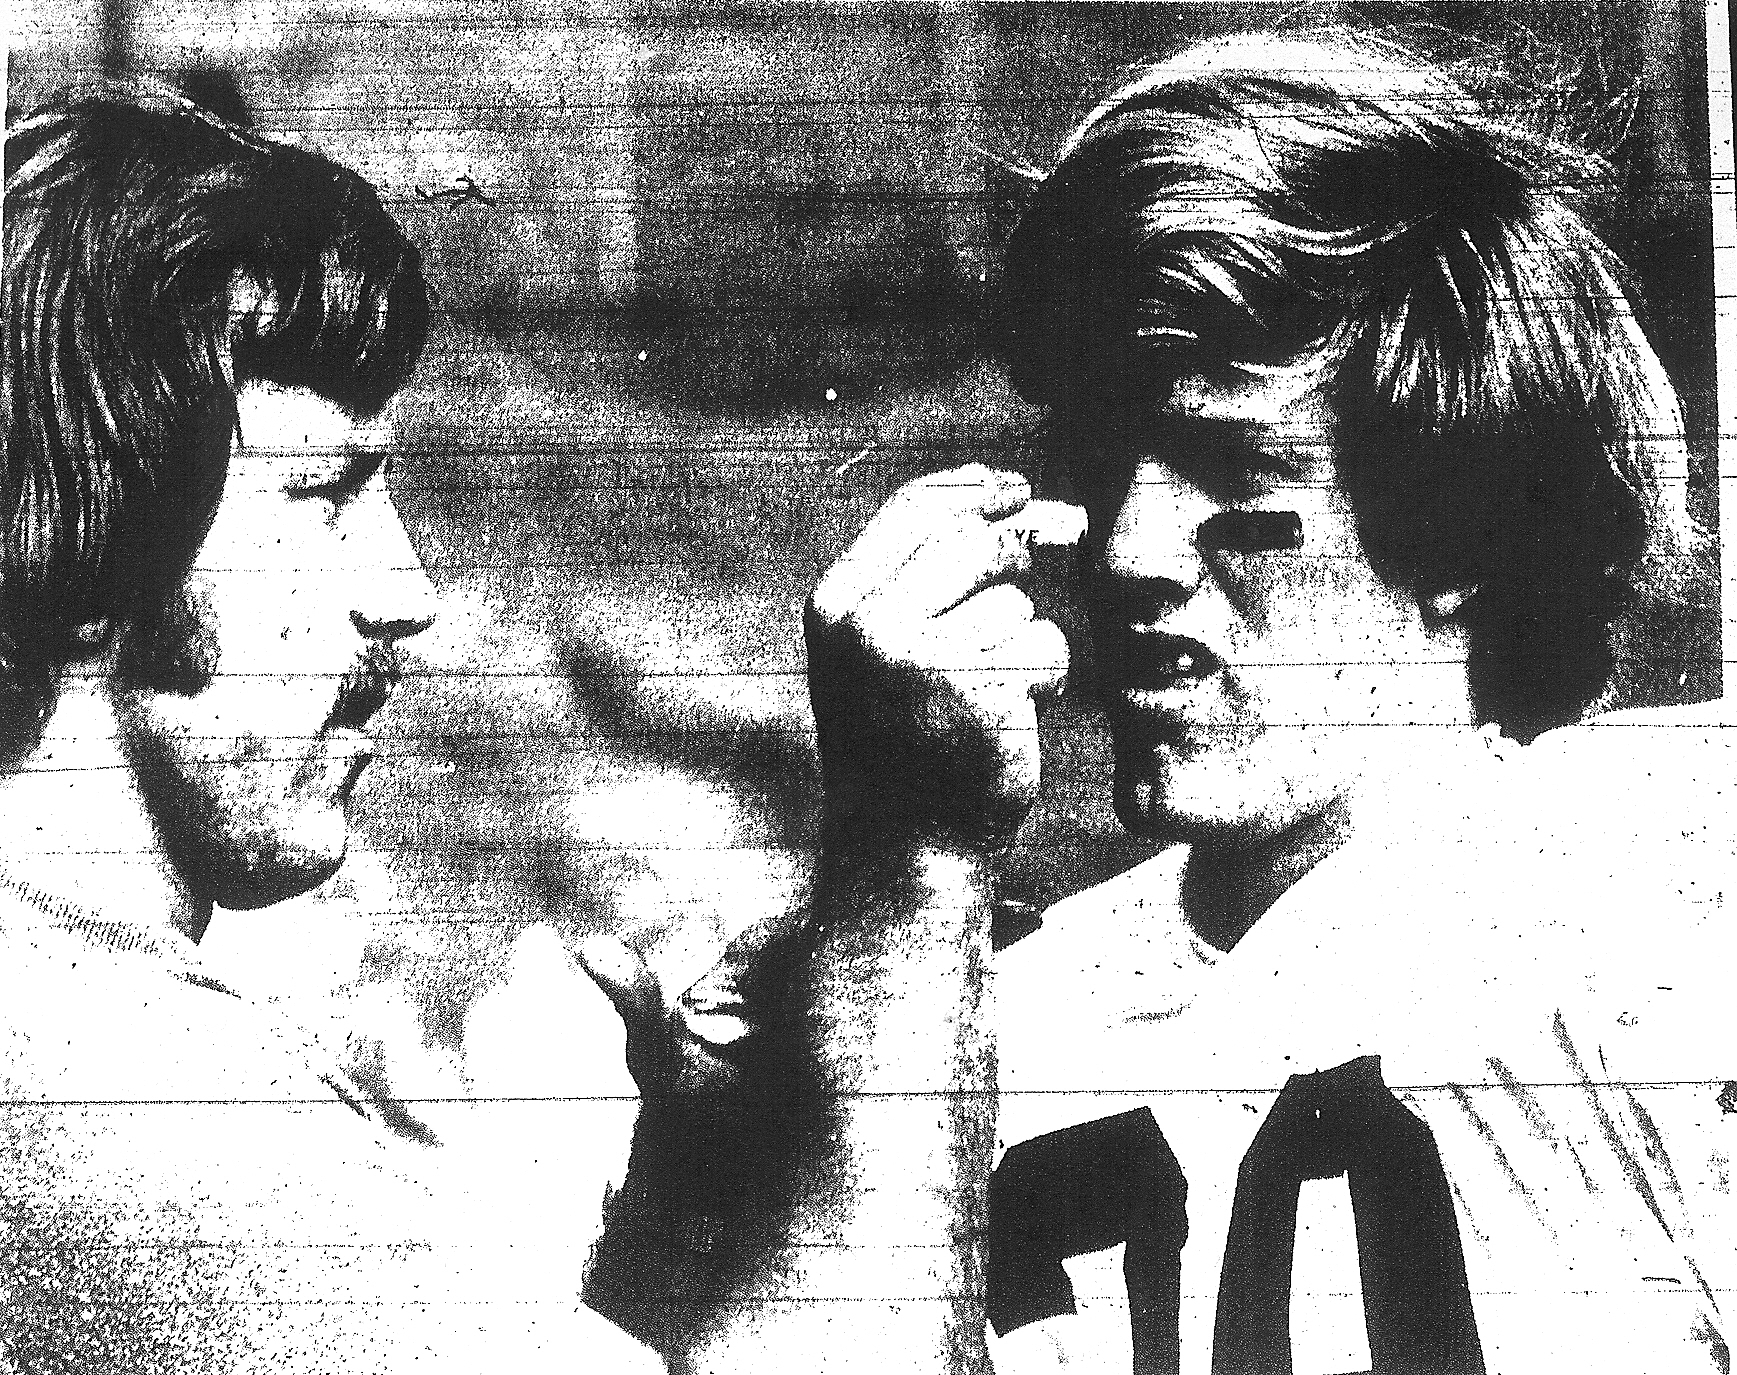 Patrick Henry assistant coach Garth DeFelice, a future NFL game officiating umpire, takes on quasi role of surgeon, removing dirt from the eye of defensive back Kirk Feldman, who just intercepted his third pass in second quarter of Patriots' 34-13 victory over St. Ajugustine.